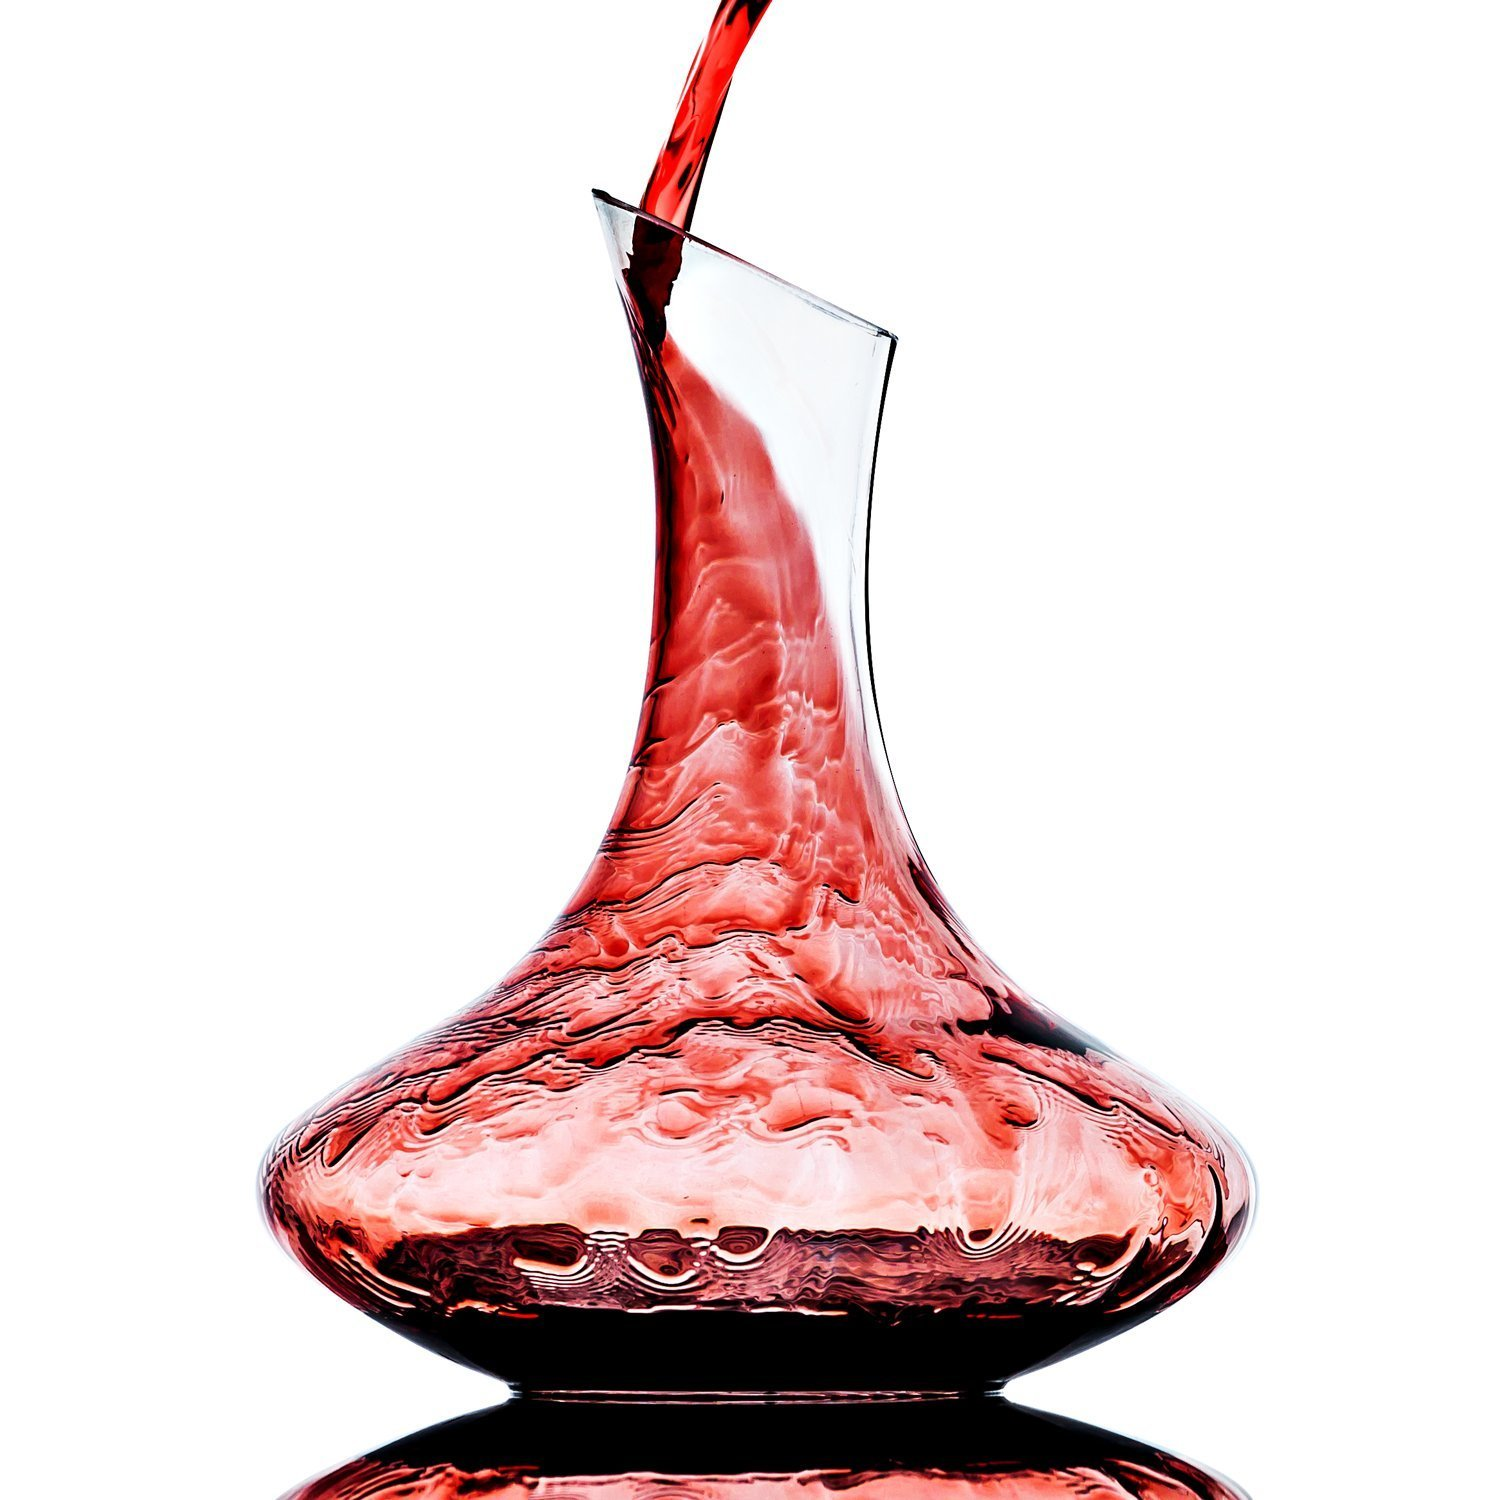 JHome 1800ml(60.8oz) Hand-Bolown Lead-free Crystal Glass Wine Decanter,Red Wine Carafe